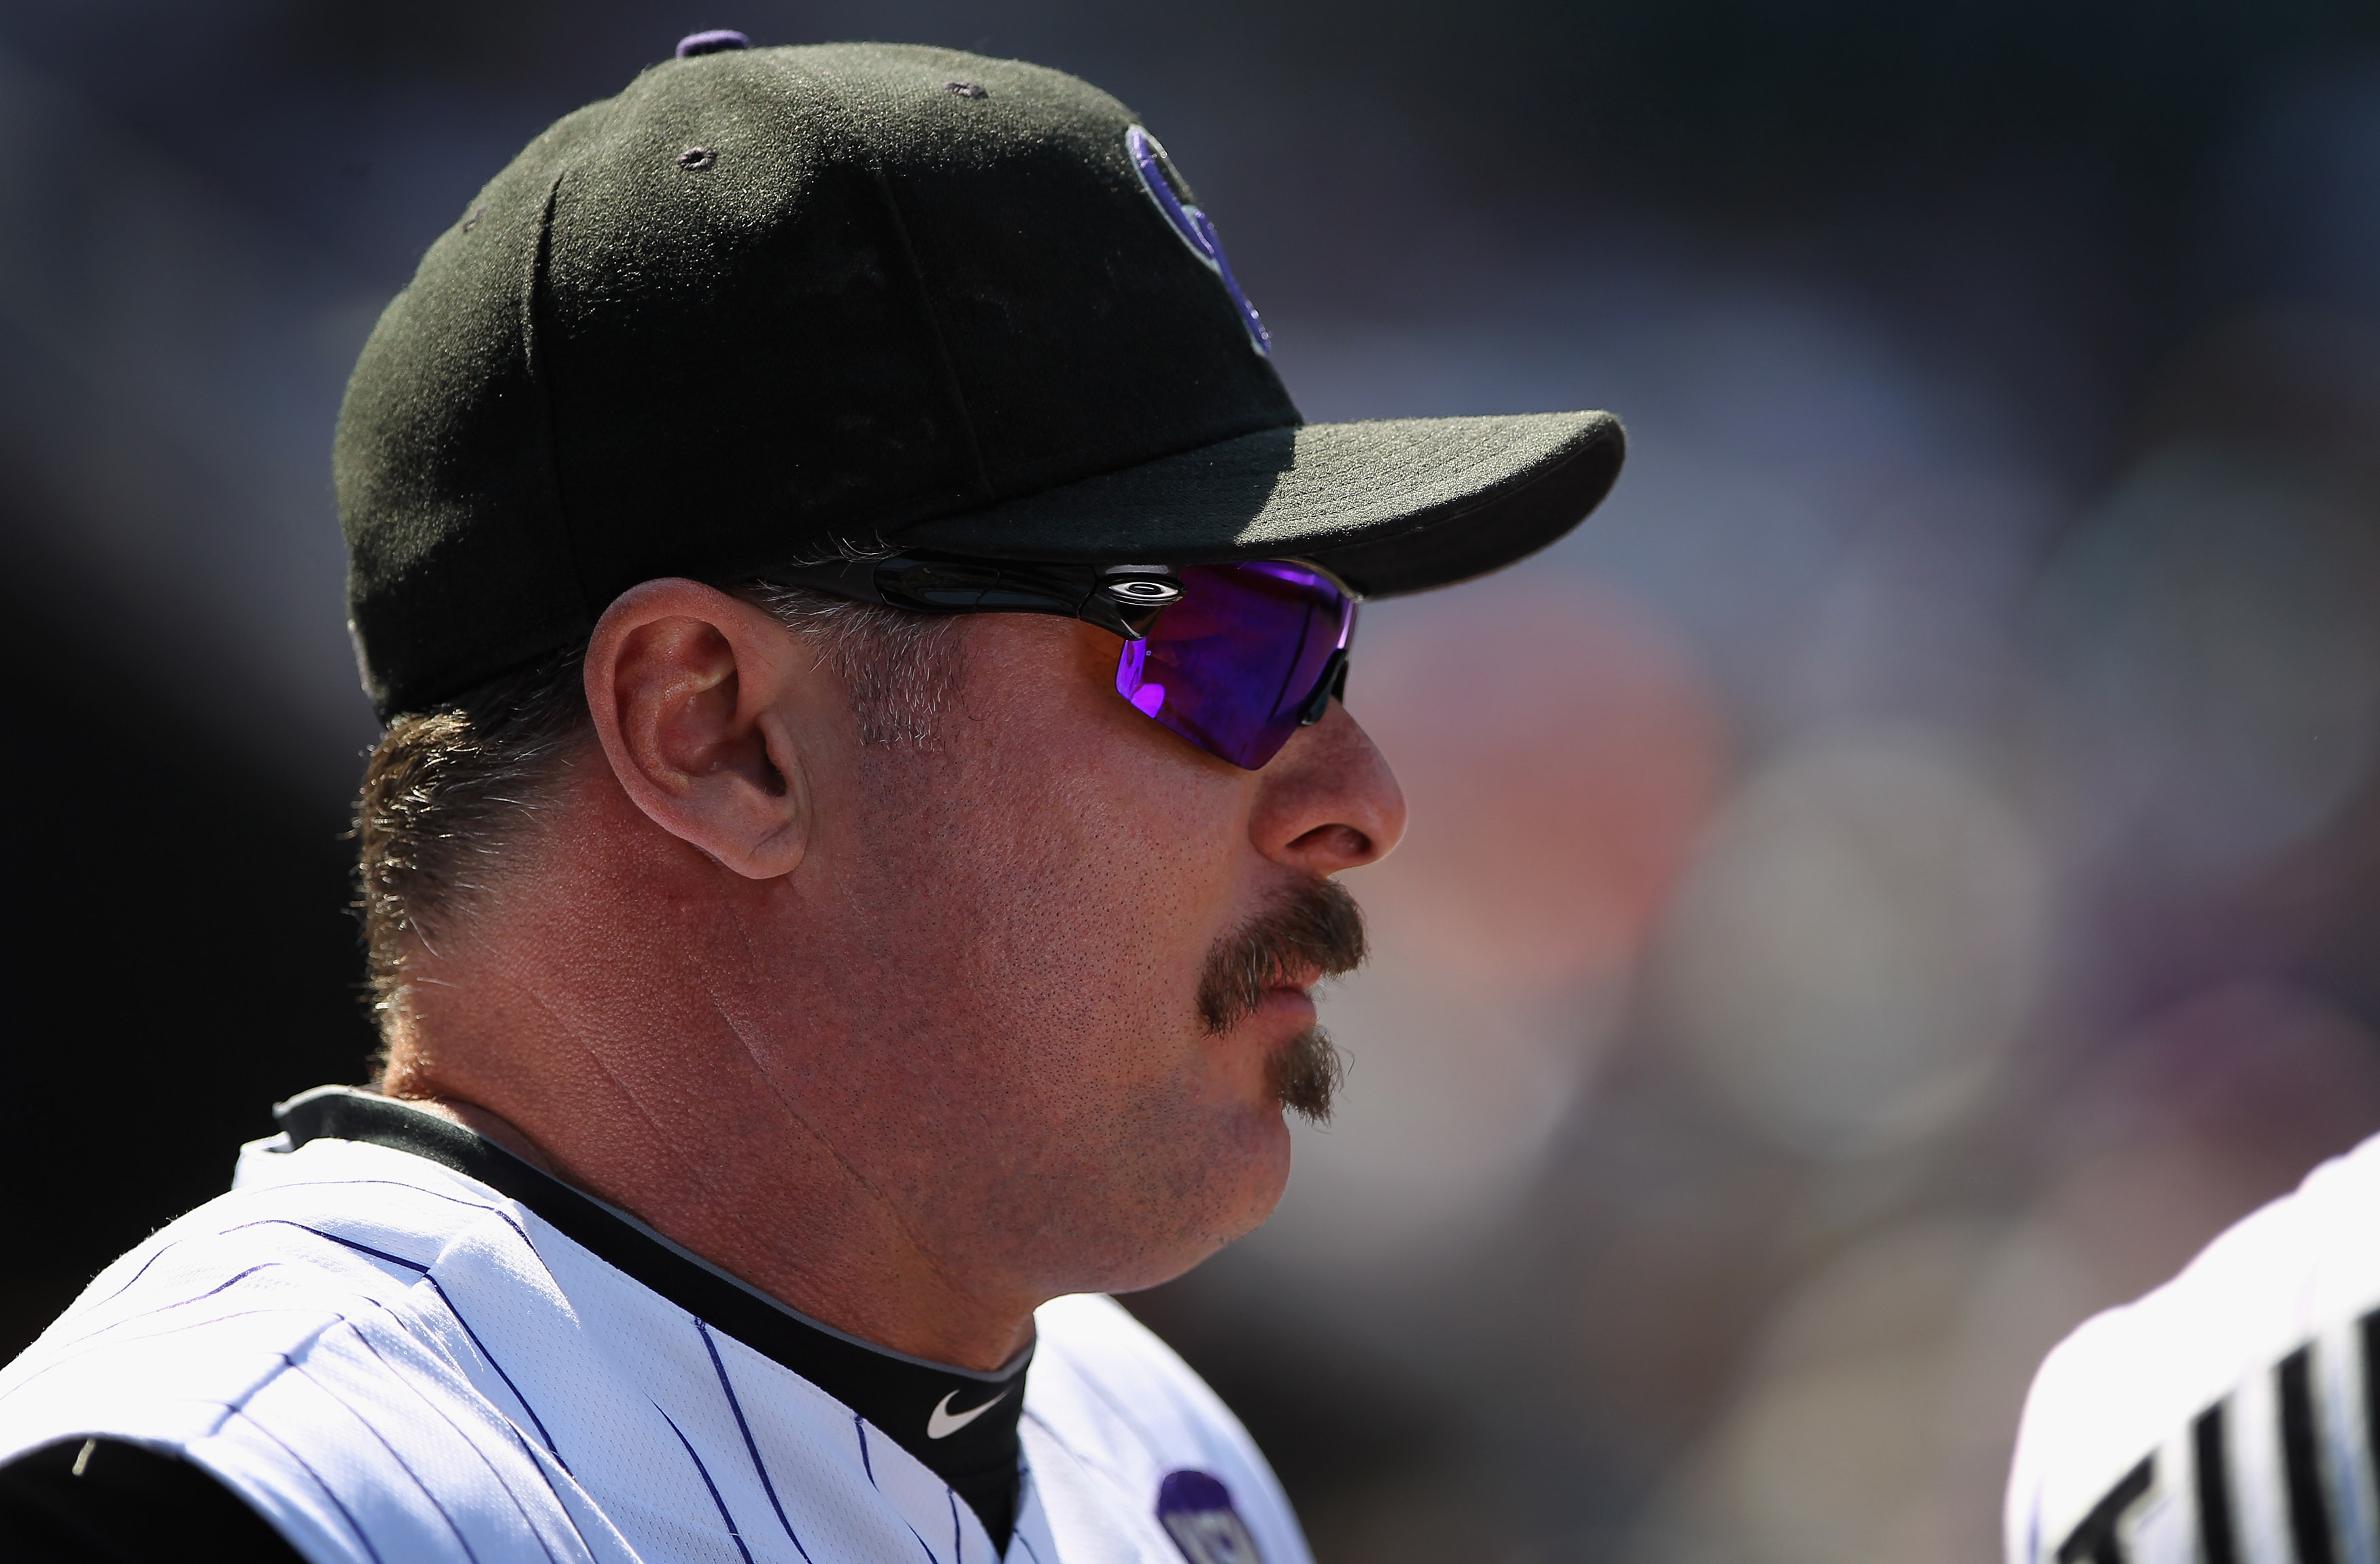 DENVER - SEPTEMBER 15:  Jason Giambi #23 of the Colorado Rockies looks on from the dugout against the San Diego Padres at Coors Field on September 15, 2010 in Denver, Colorado. The Rockies defeated the Padres 9-6.  (Photo by Doug Pensinger/Getty Images)